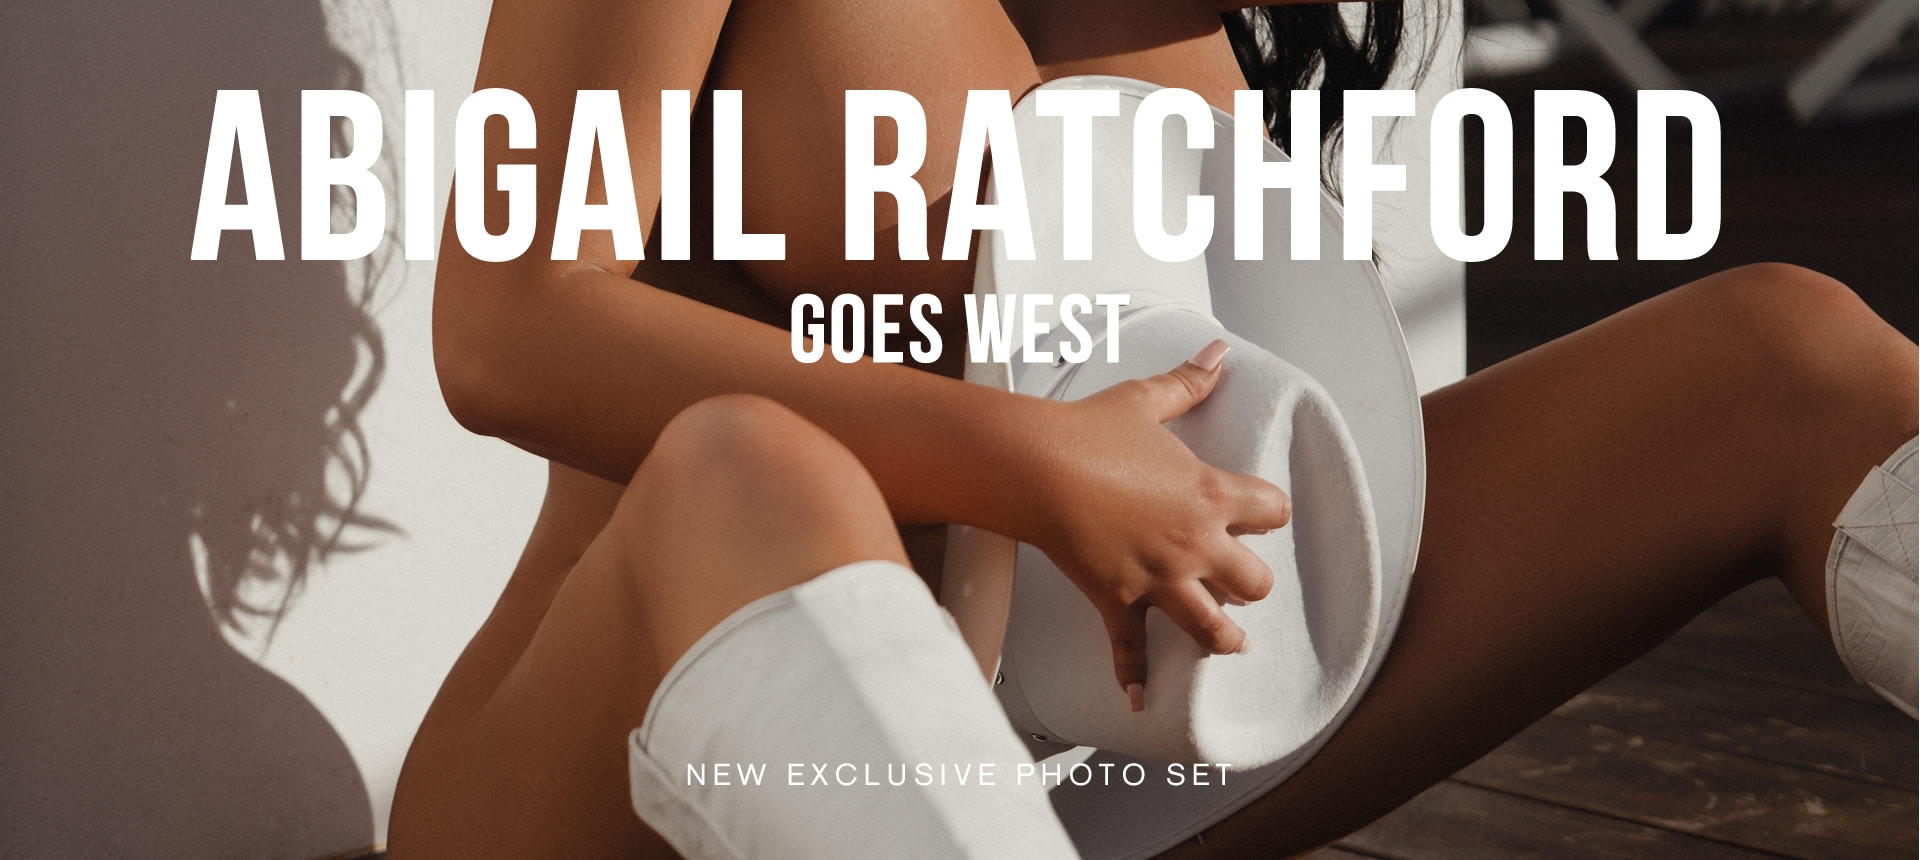 Abigail Ratchford Go West Photo Shoot - JZL VIP